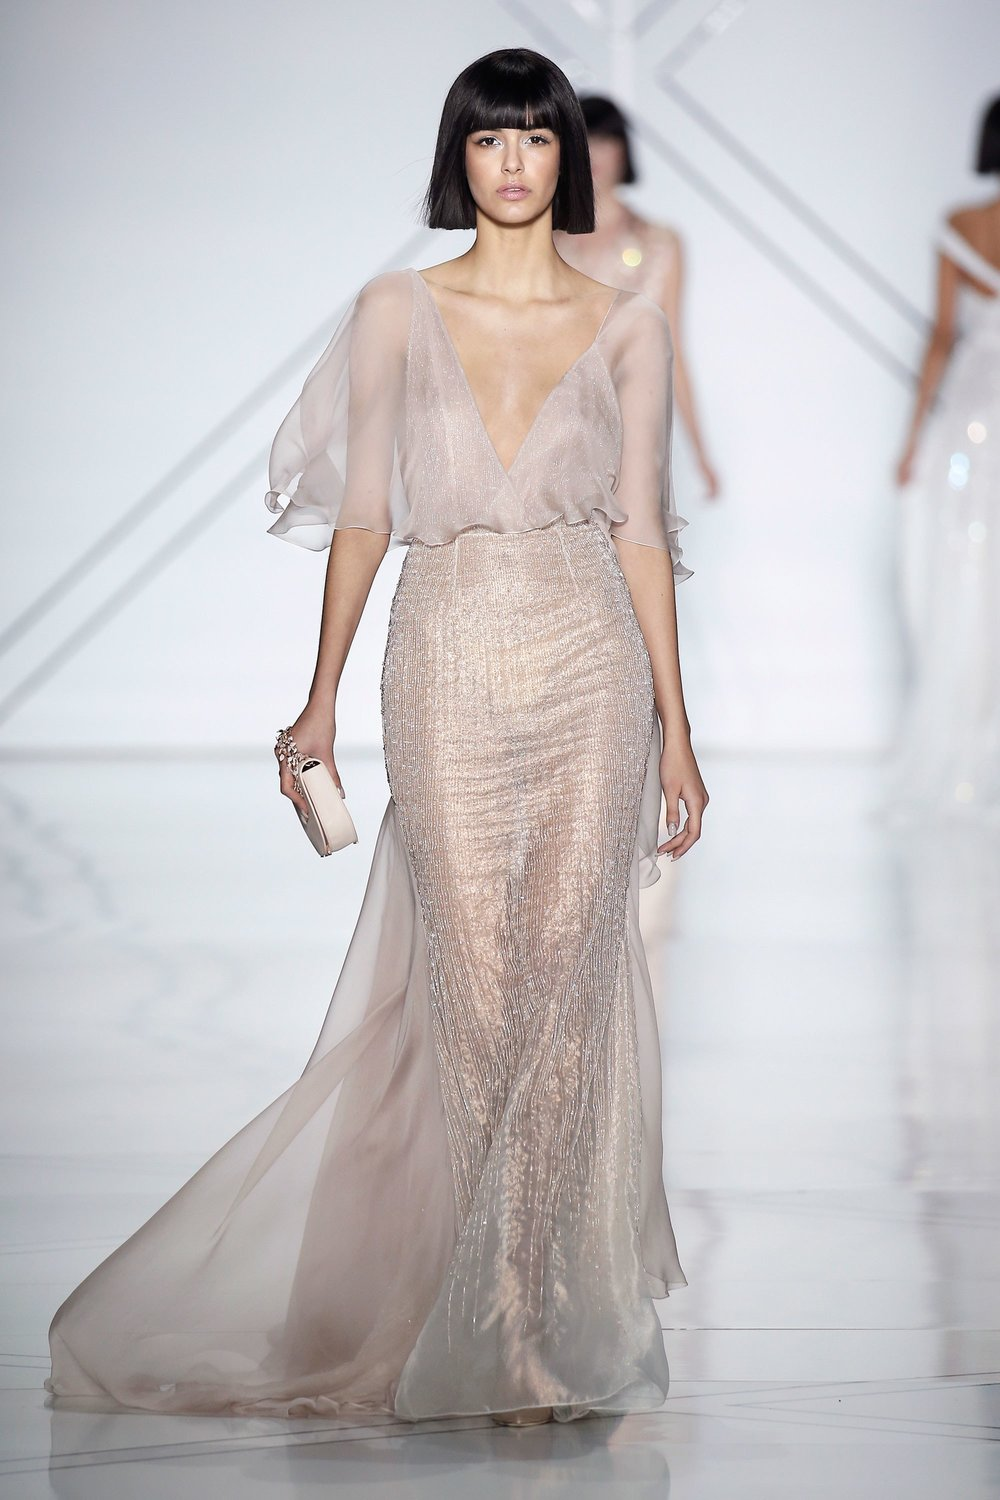 32-ralph-russo-spring-17-couture.jpg